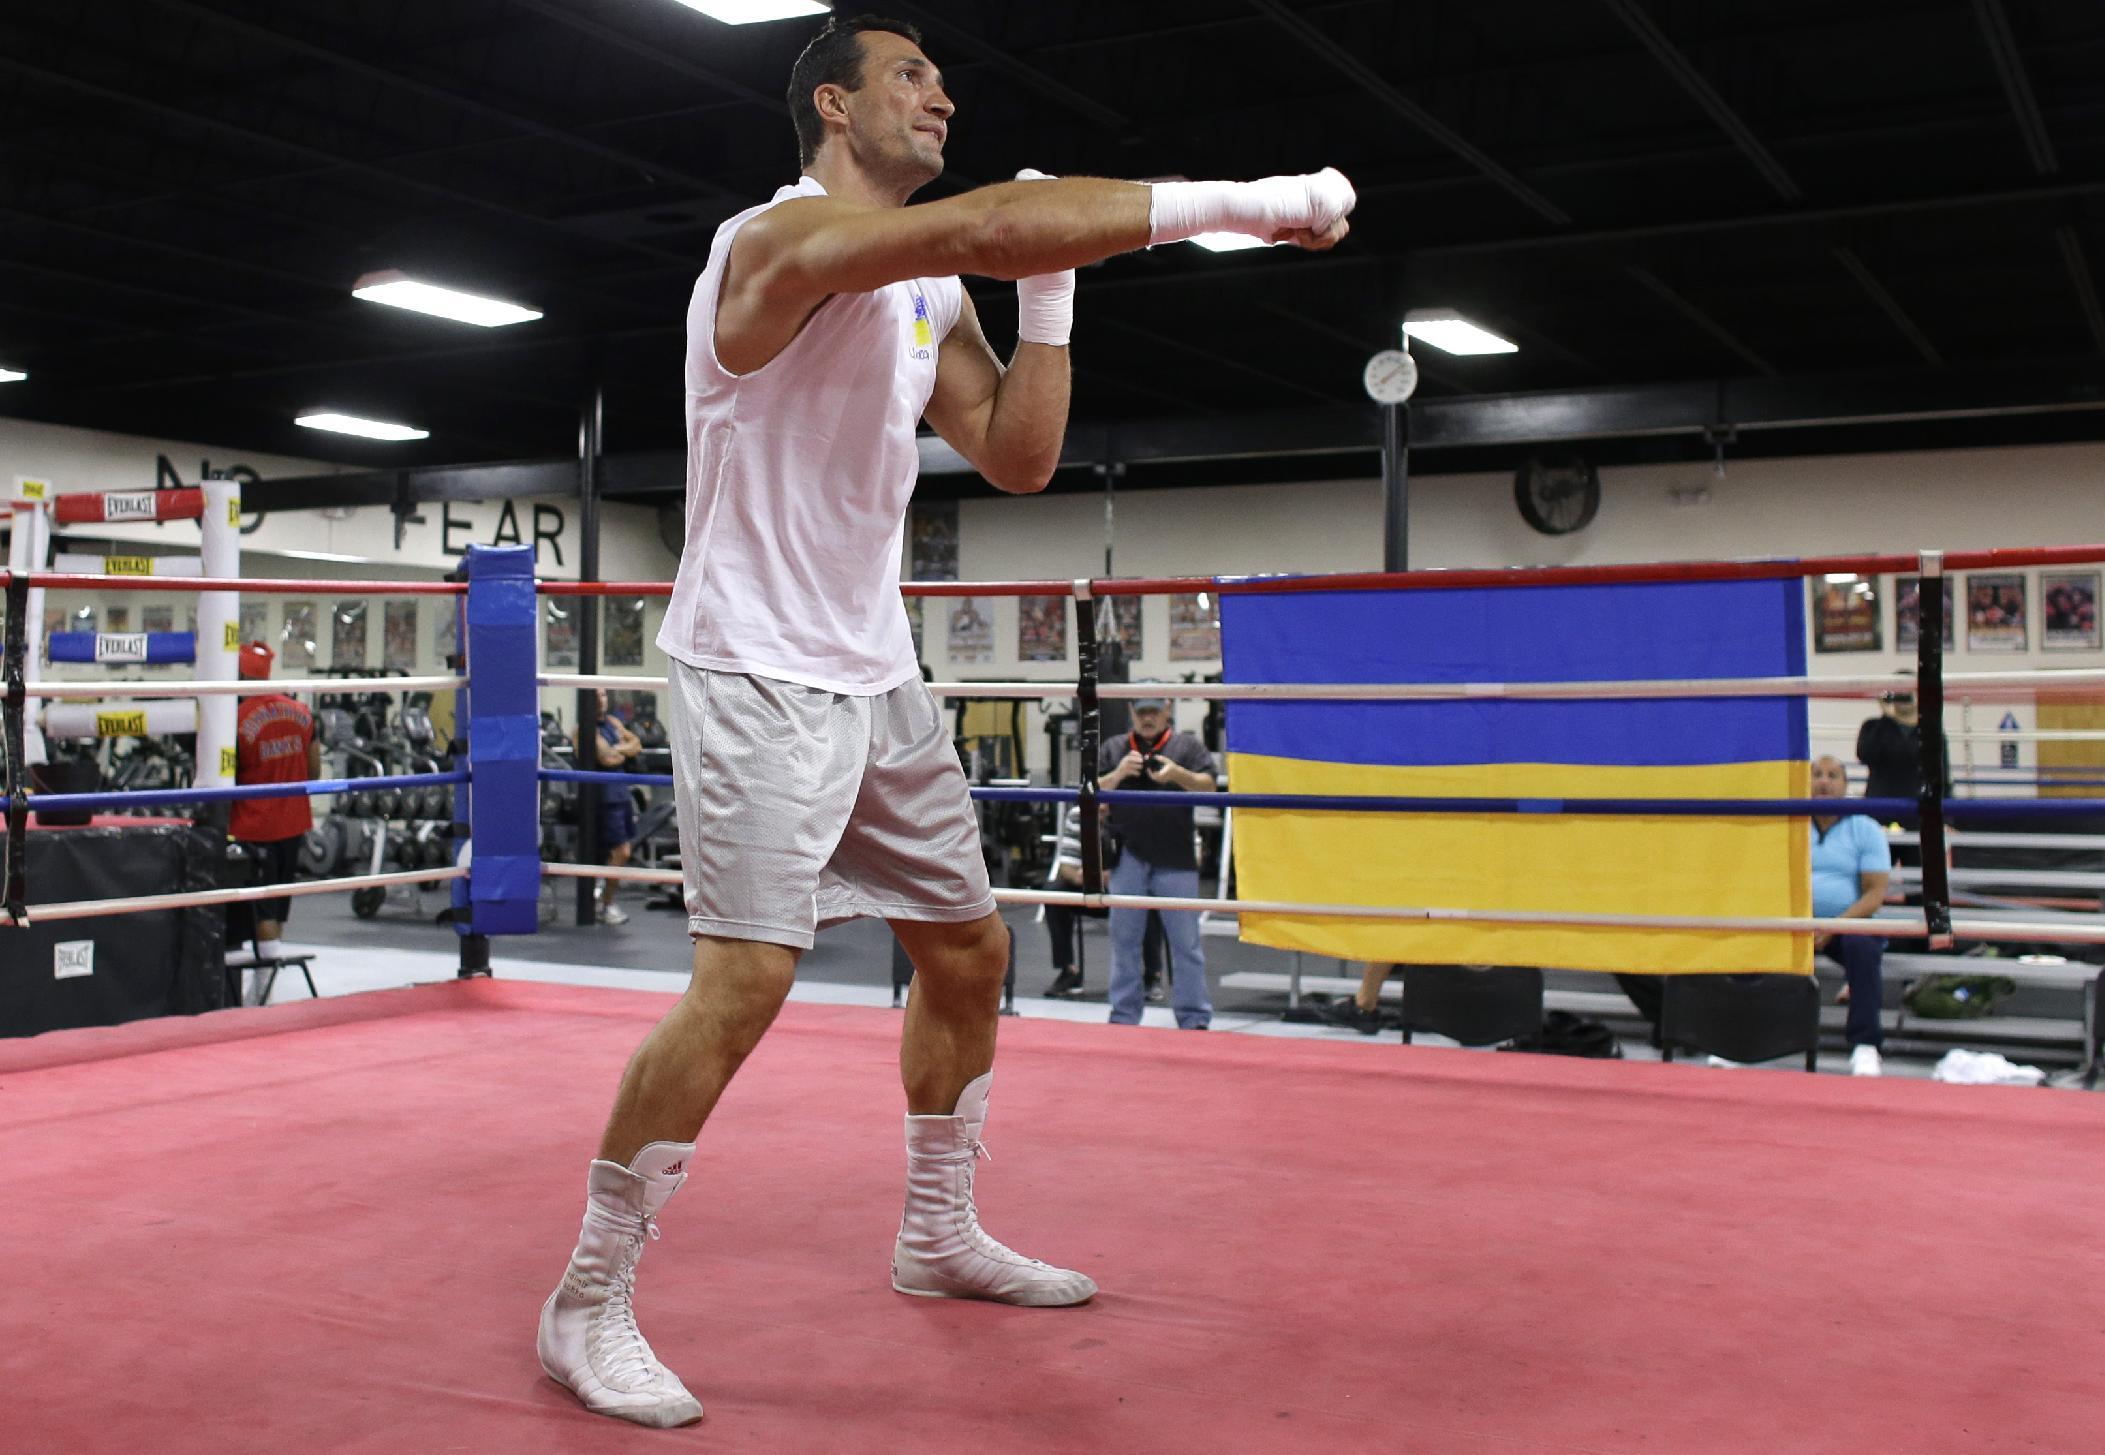 Undefeated World Heavyweight Boxing Champion Wladimir Klitschko, of Ukraine, trains at the Lucky Street Boxing Gym, Thursday, March 20, 2014, in Hollywood, Fla. Klitschko is preparing for his upcoming fight April 26 against Alex Leapai in Germany. The Ukrainian flag hangs on the ring